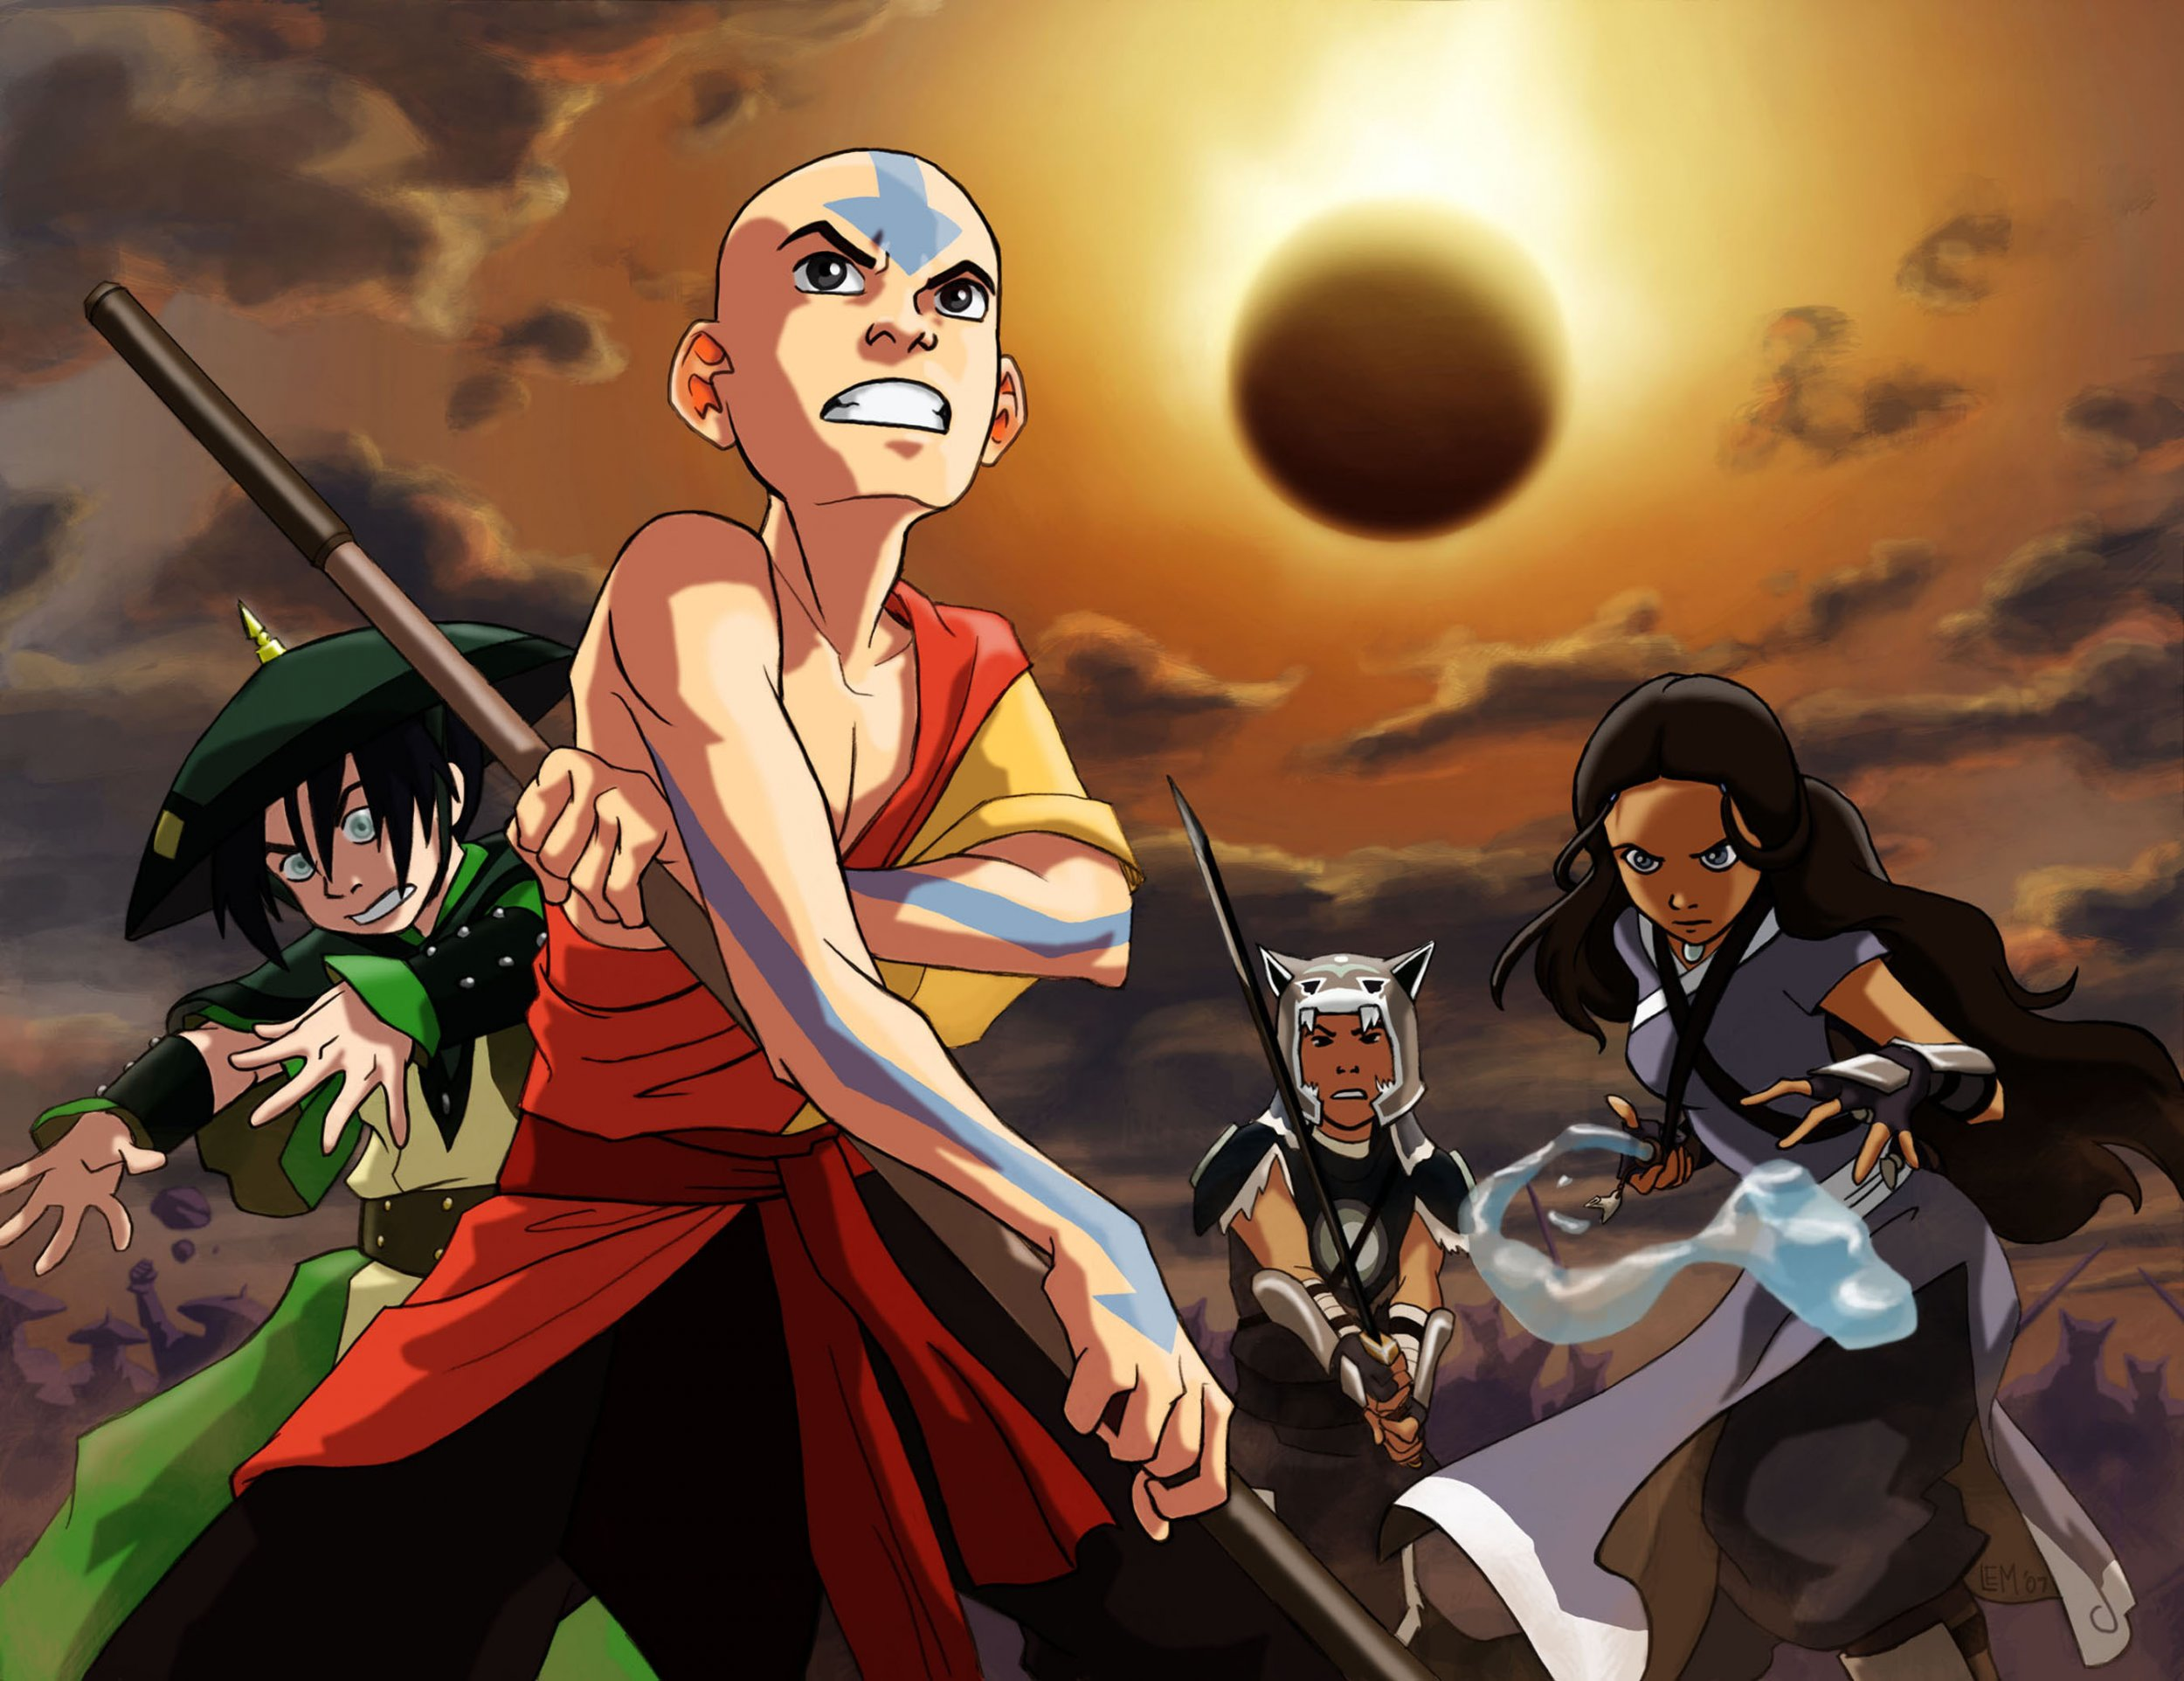 Where to Watch 'Avatar: The Last Airbender' Online: Netflix Doesn't